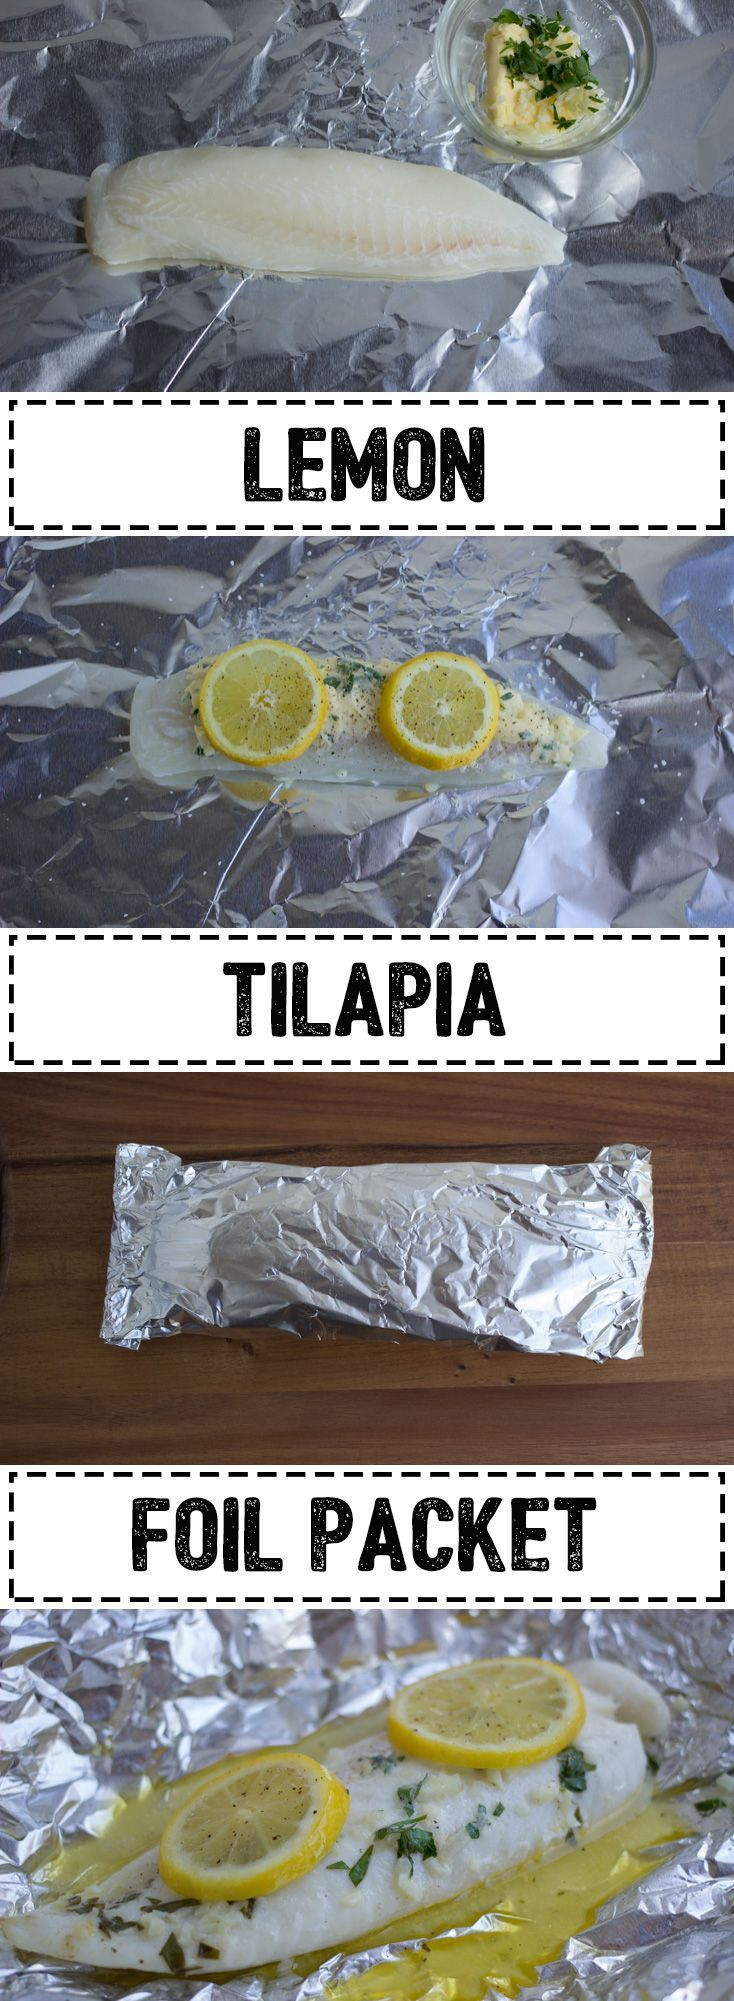 Lemon Tilapia Foil Packet